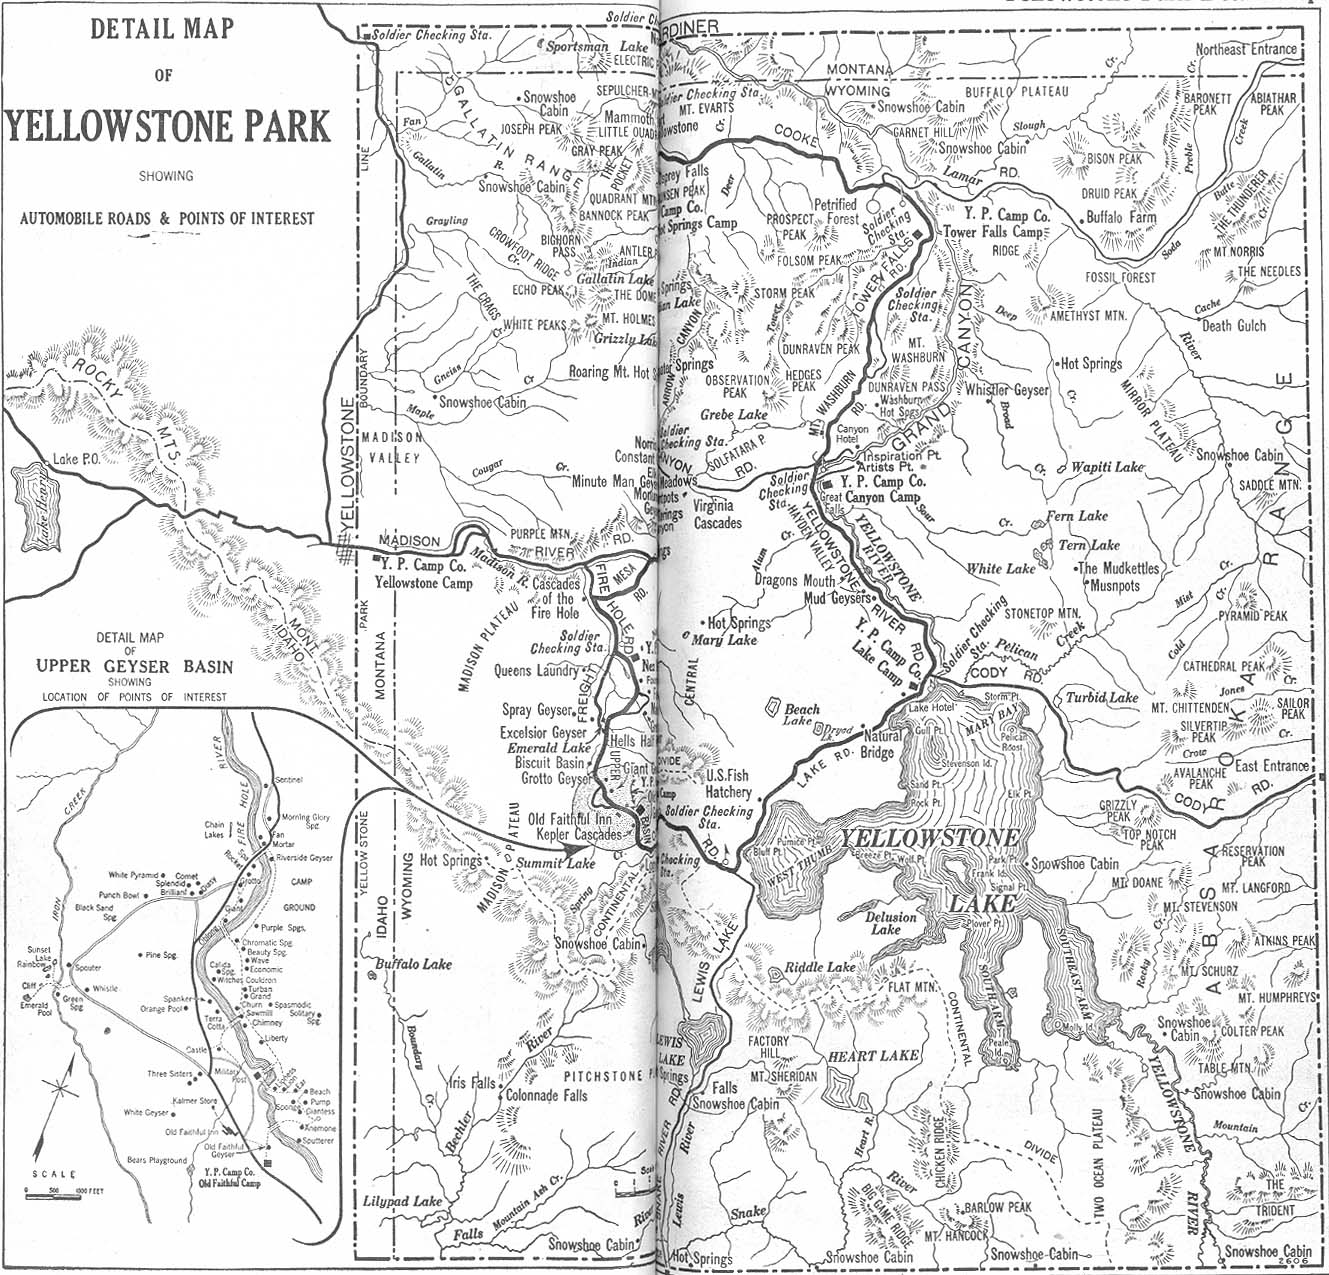 Yellowstone National Park Map, Wyoming, United States 1917